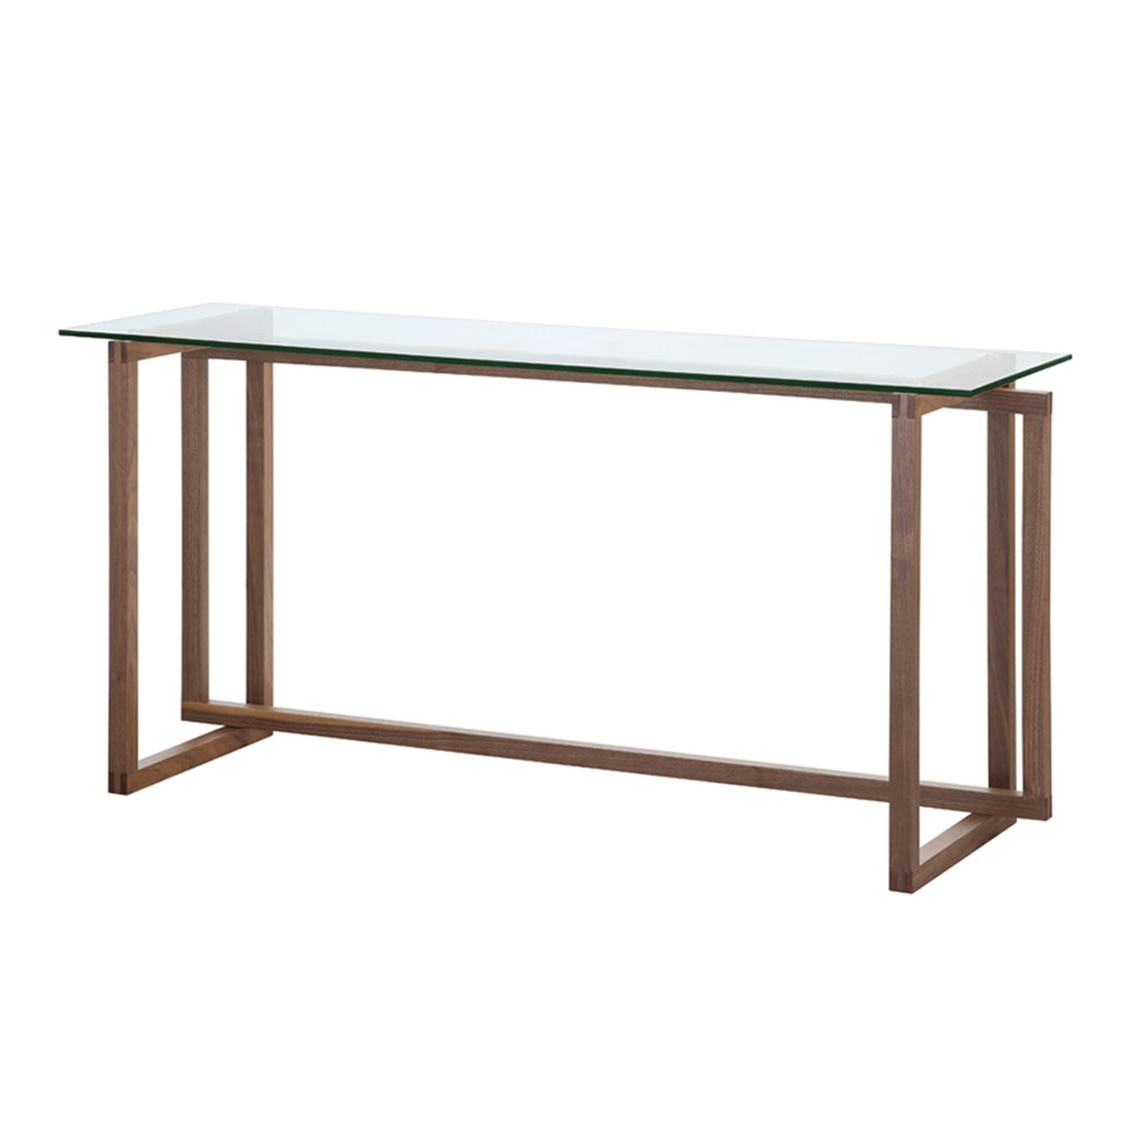 Fashionable Kyra Console Tables Throughout Kyra Console Table (View 2 of 20)